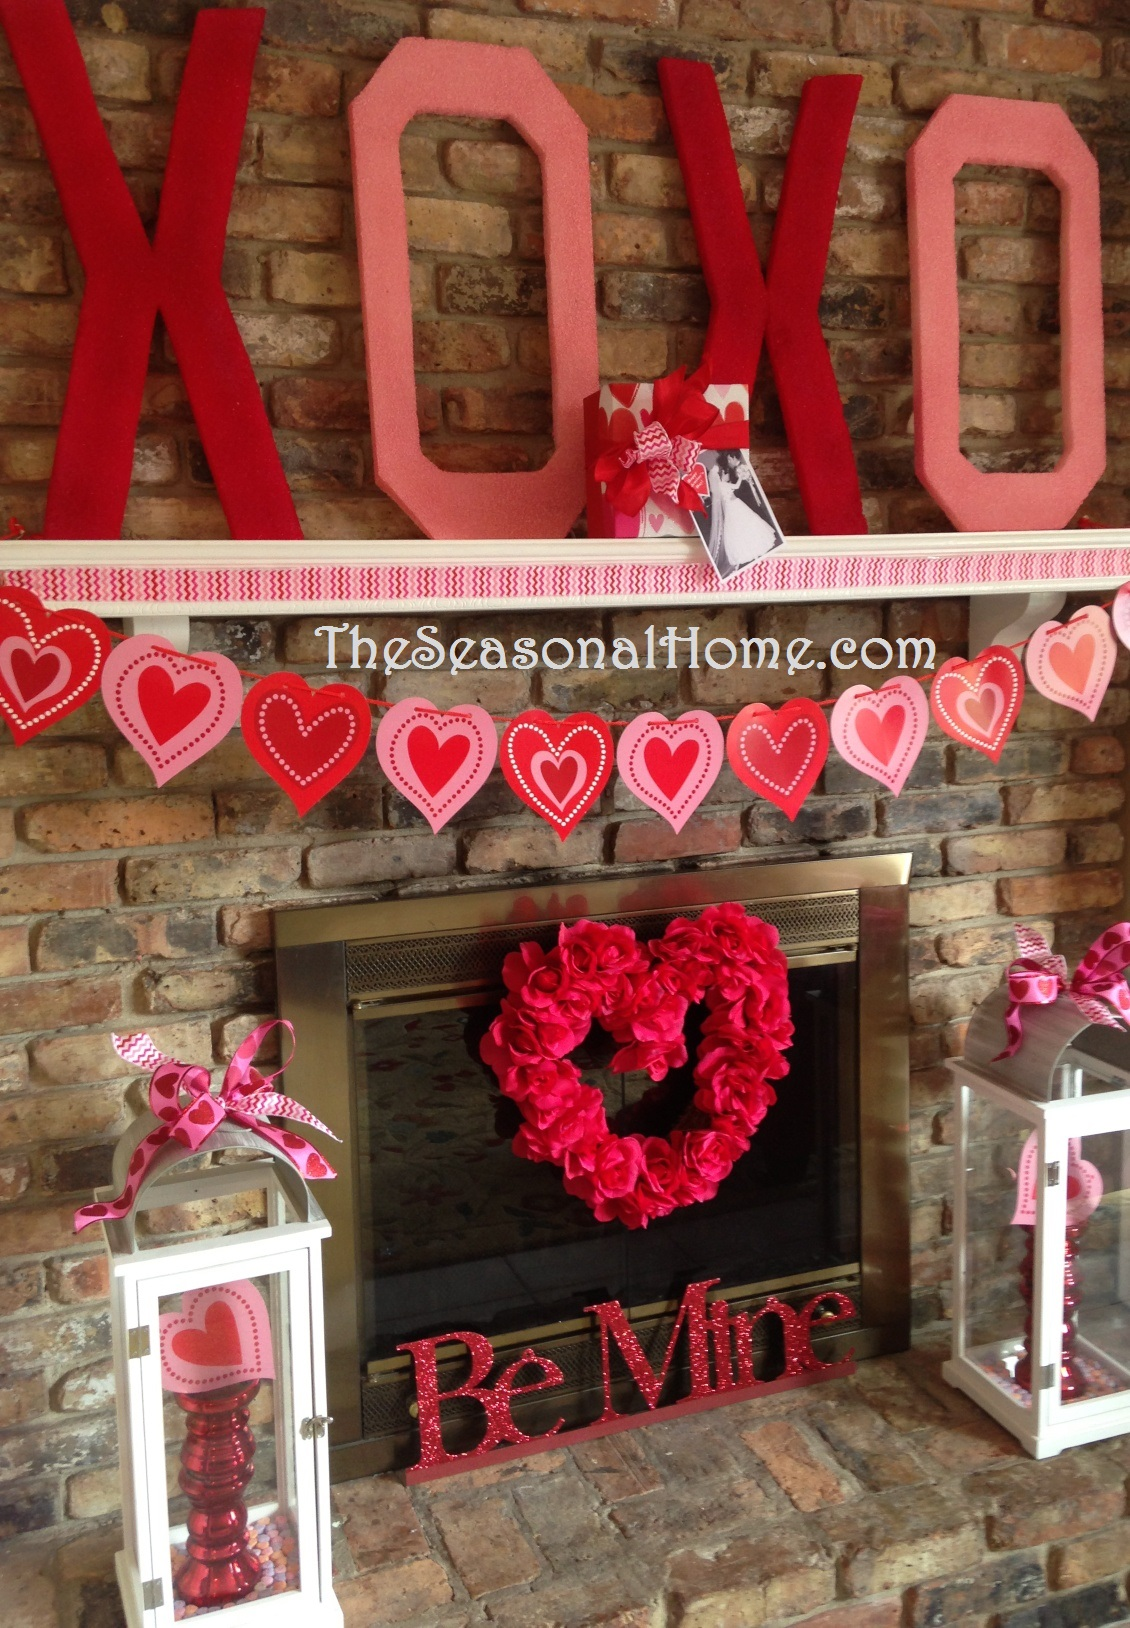 Valentine kisses hugs d i y decor gift idea the for Decorate for valentines day